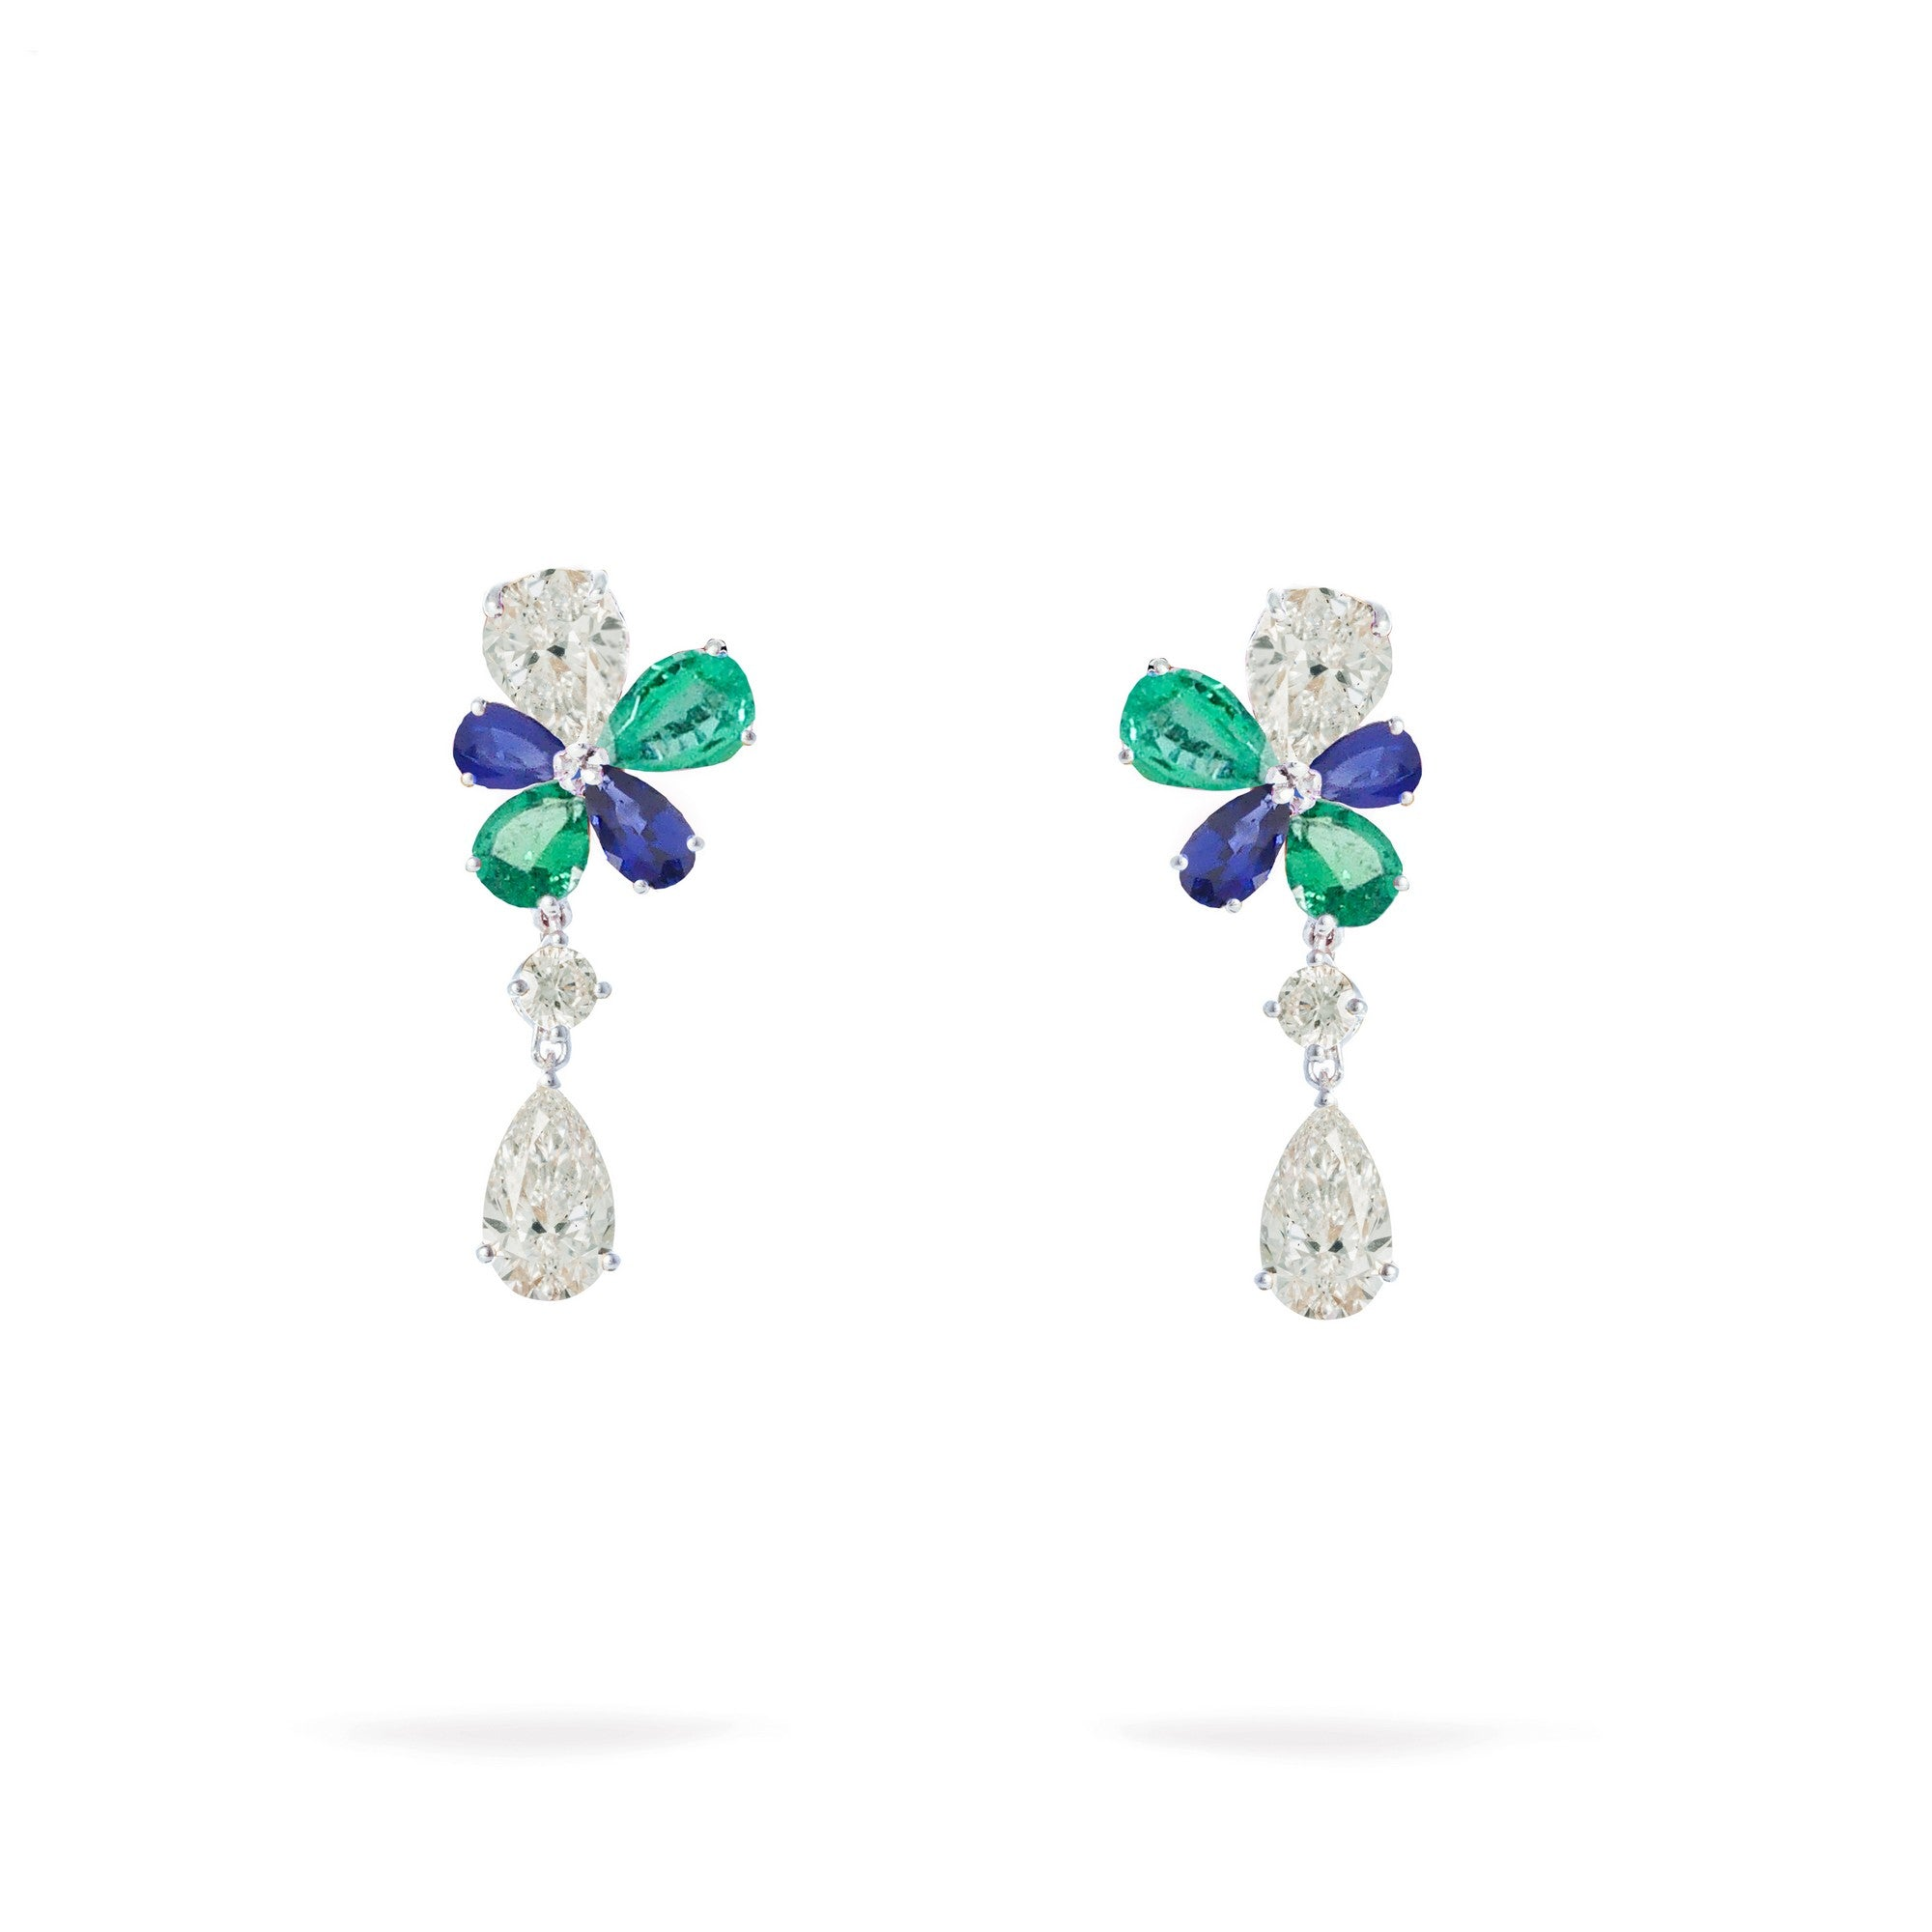 Prato Fiorito White Gold Earrings With Emeralds Sapphires Diamonds